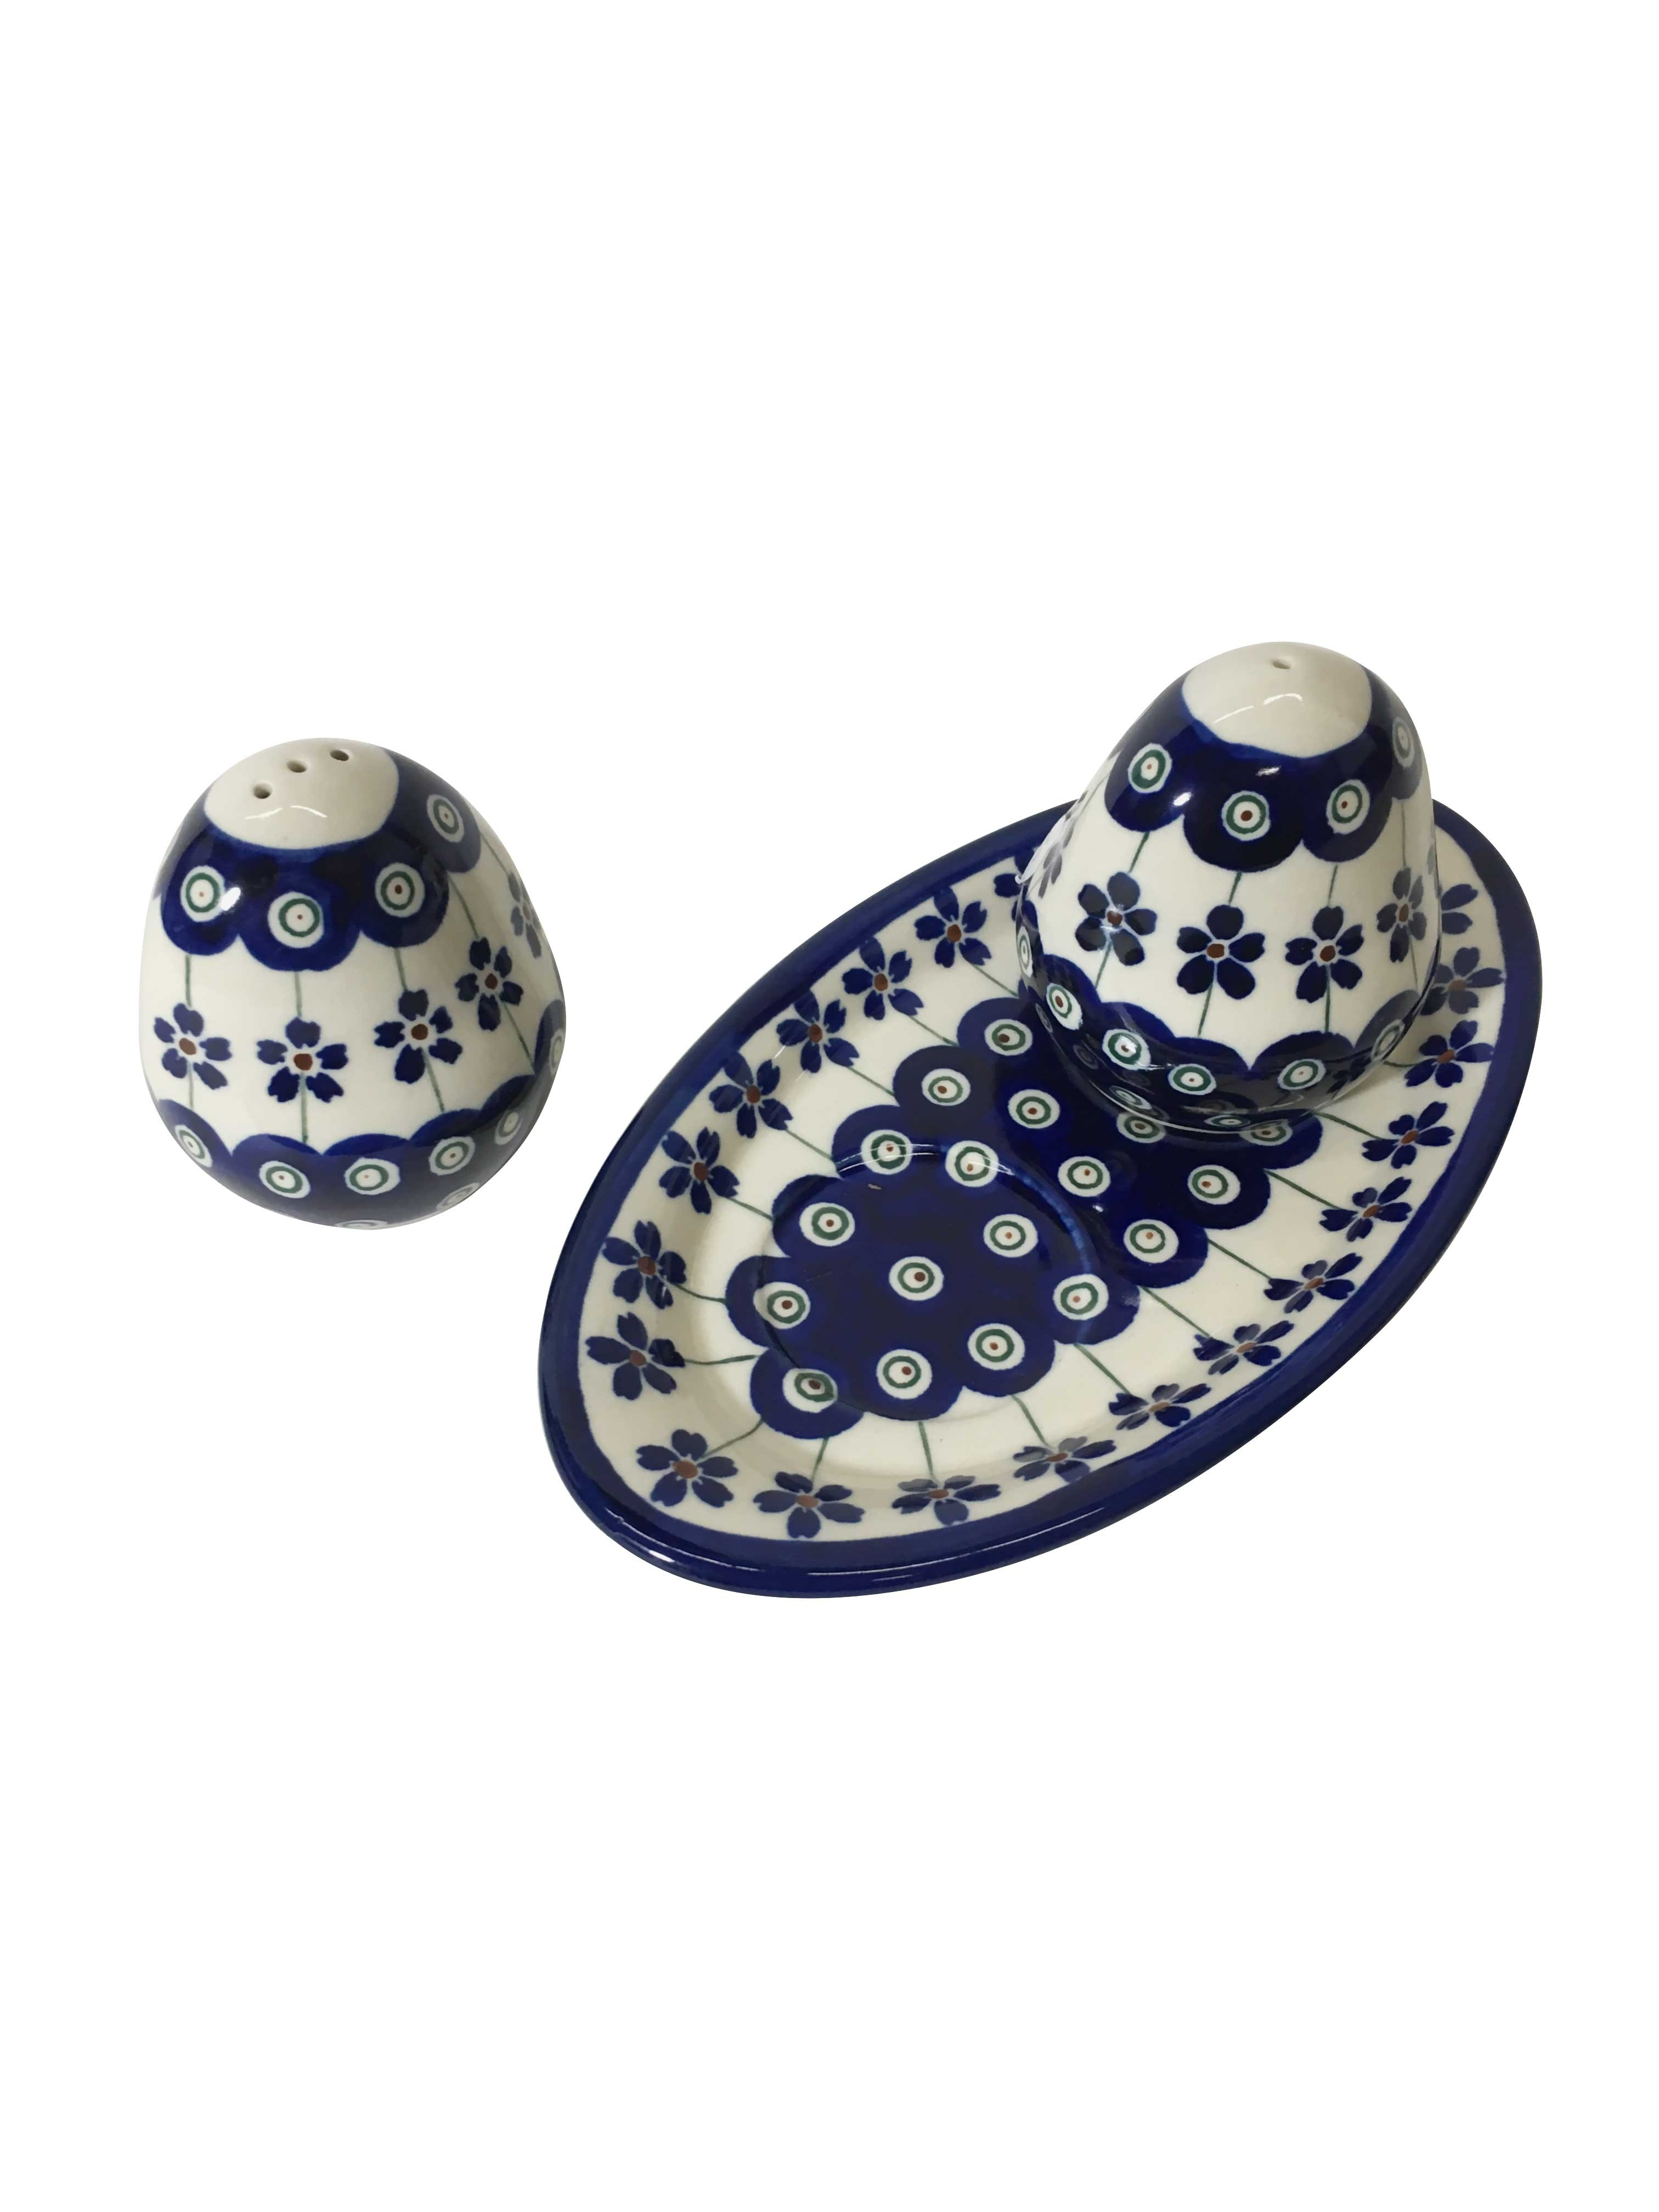 Pottery Avenue Flowering Peacock 3pc Stoneware Salt and Pepper Trio Set -962-961-166A